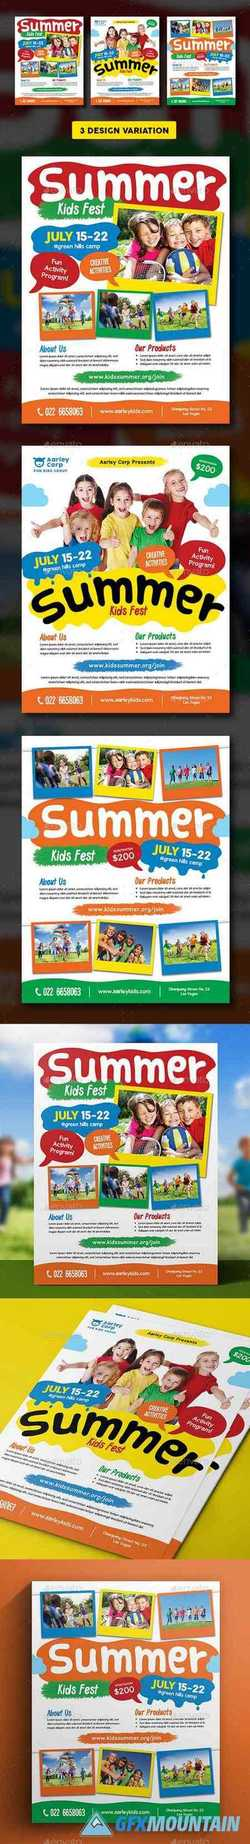 Kids Summer Camp Flyer 18118528 Free Download Graphics